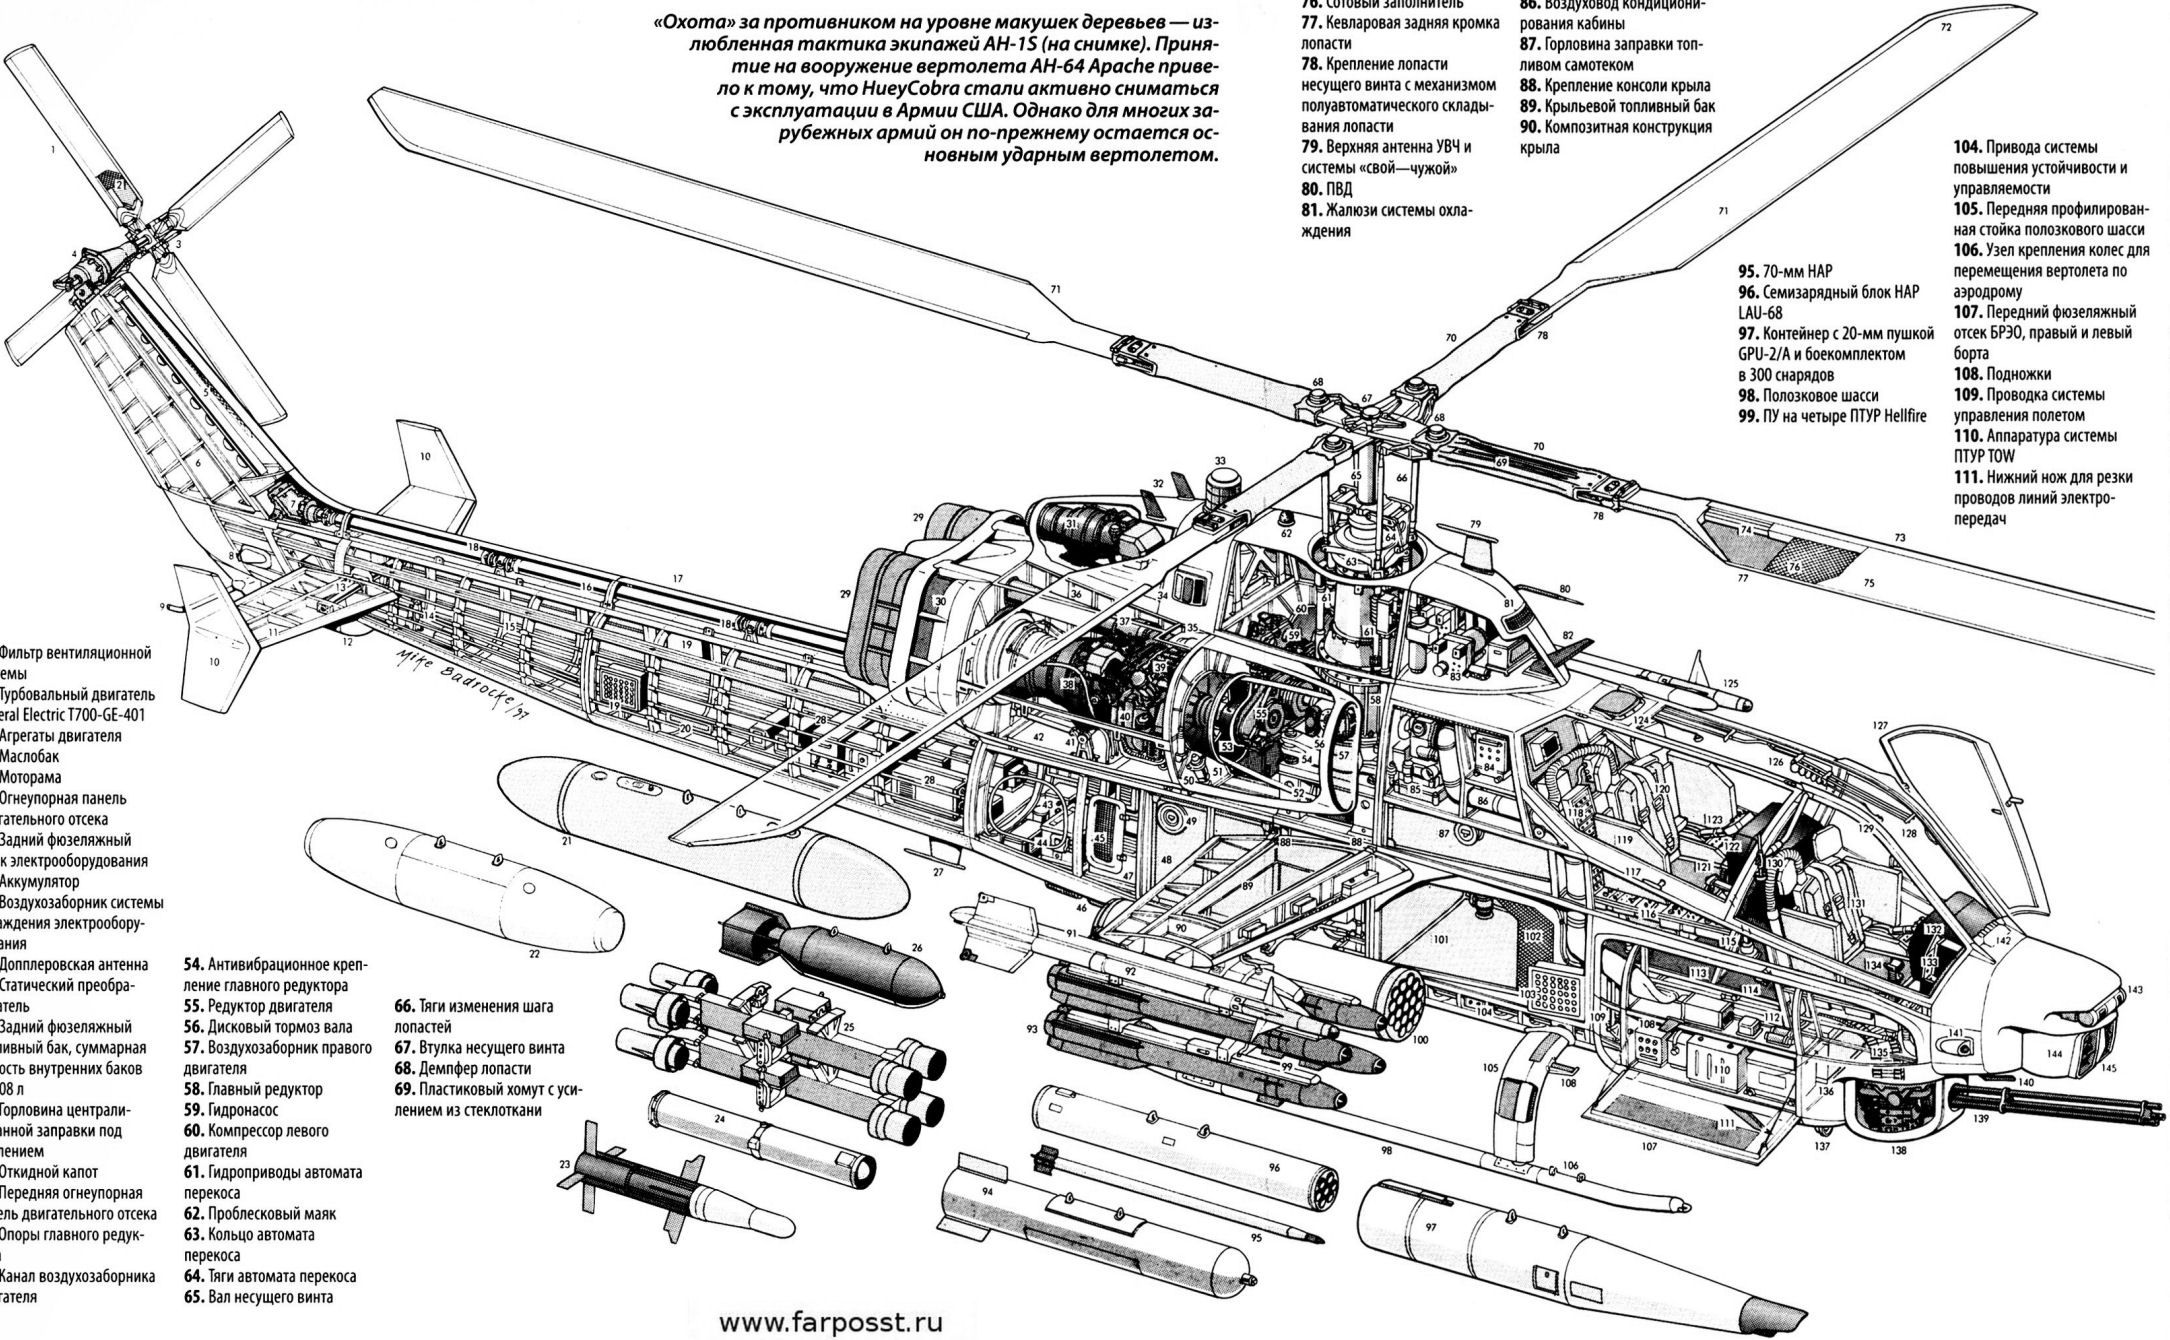 hight resolution of ah 1w cutaway attack helicopter military helicopter military aircraft military weapons